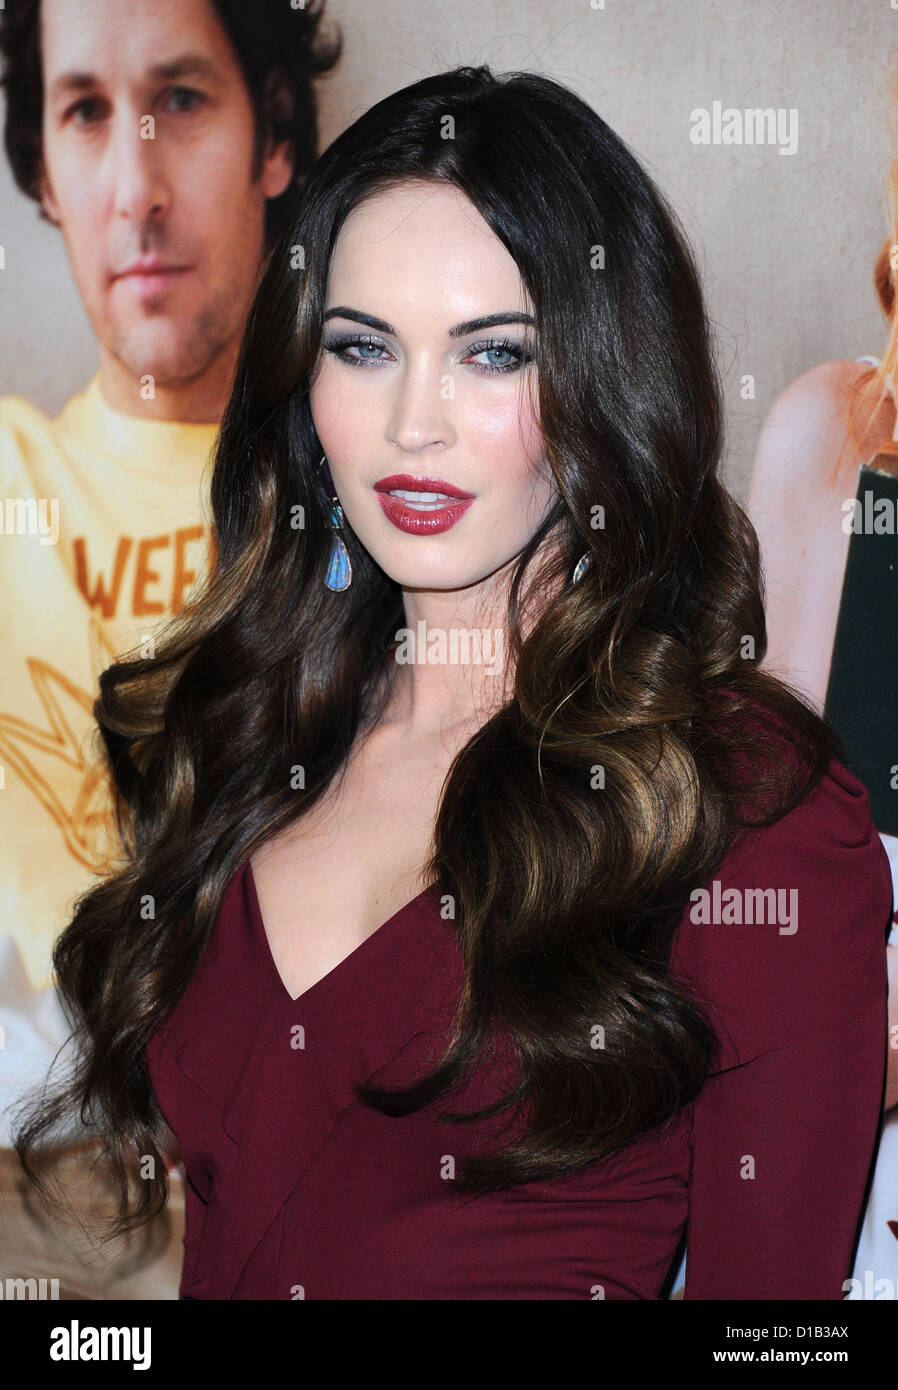 Hollywood, California, USA. 12th December 2012. Megan Fox arriving at the Los Angeles film premiere of 'This - Stock Image